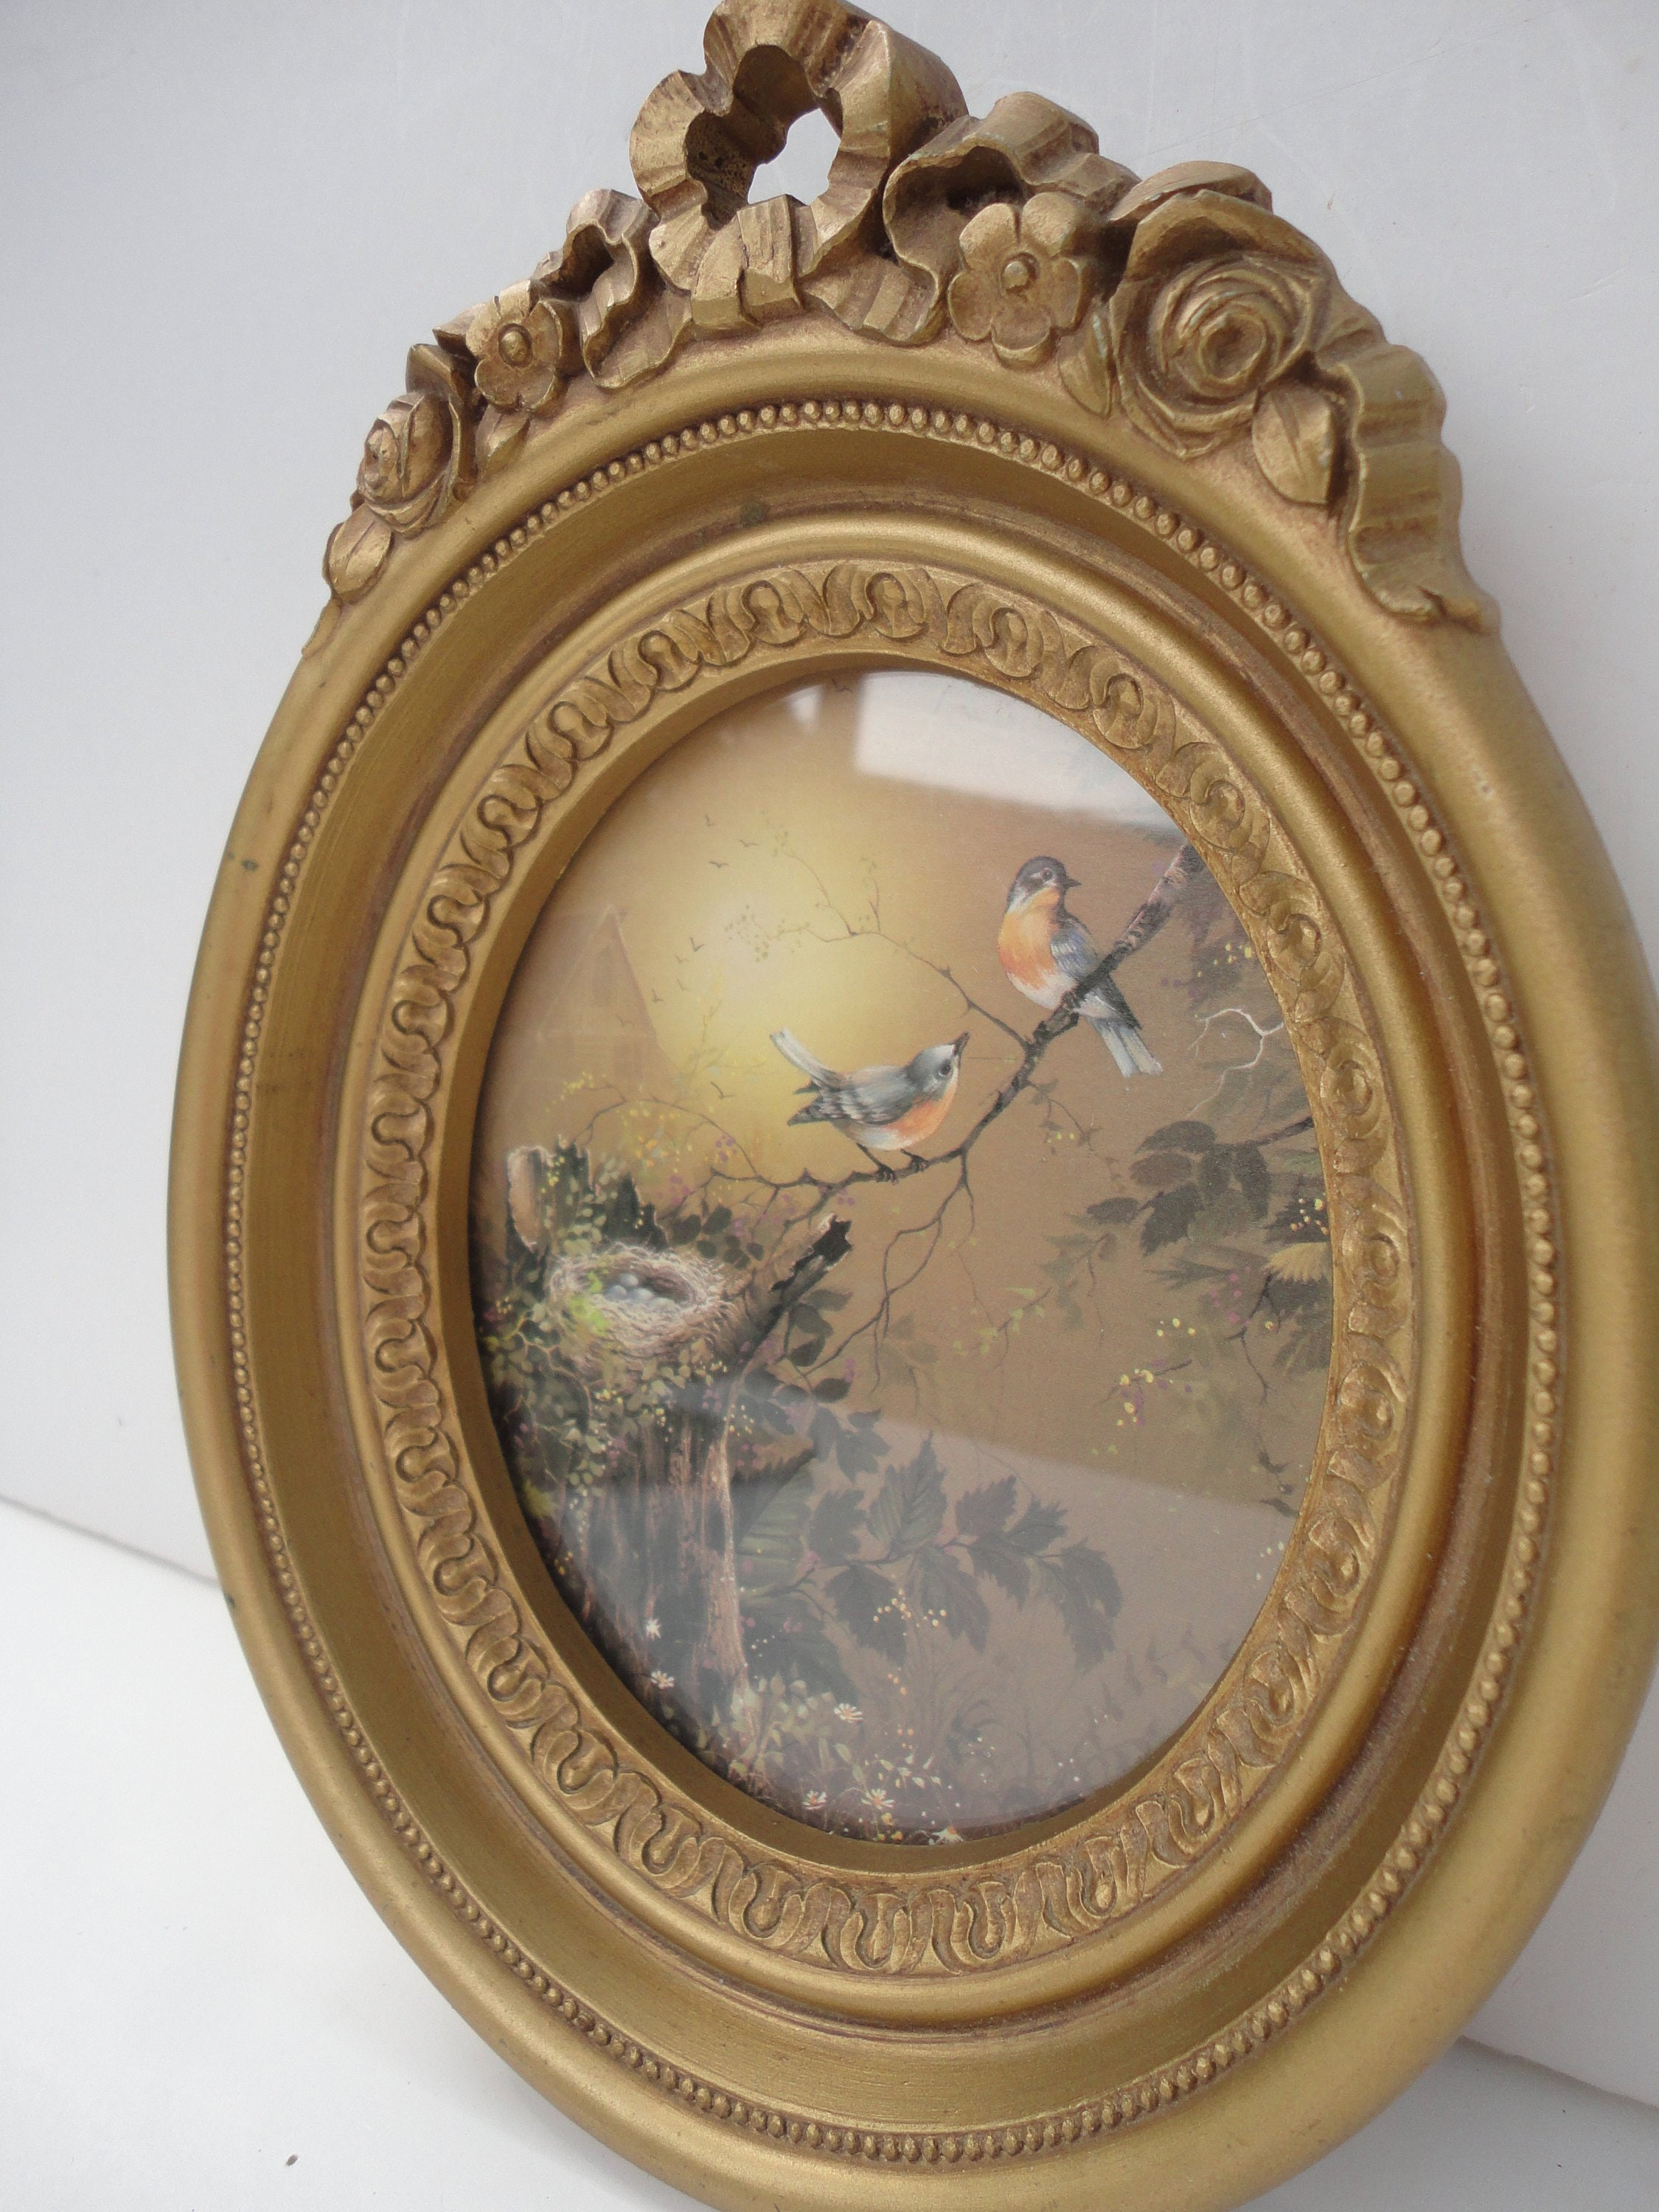 Antique oval frame ornate Vintage Floral 50 Etsy Small Vintage Gold Oval Frame With Ribbons And Roses Ornate Etsy